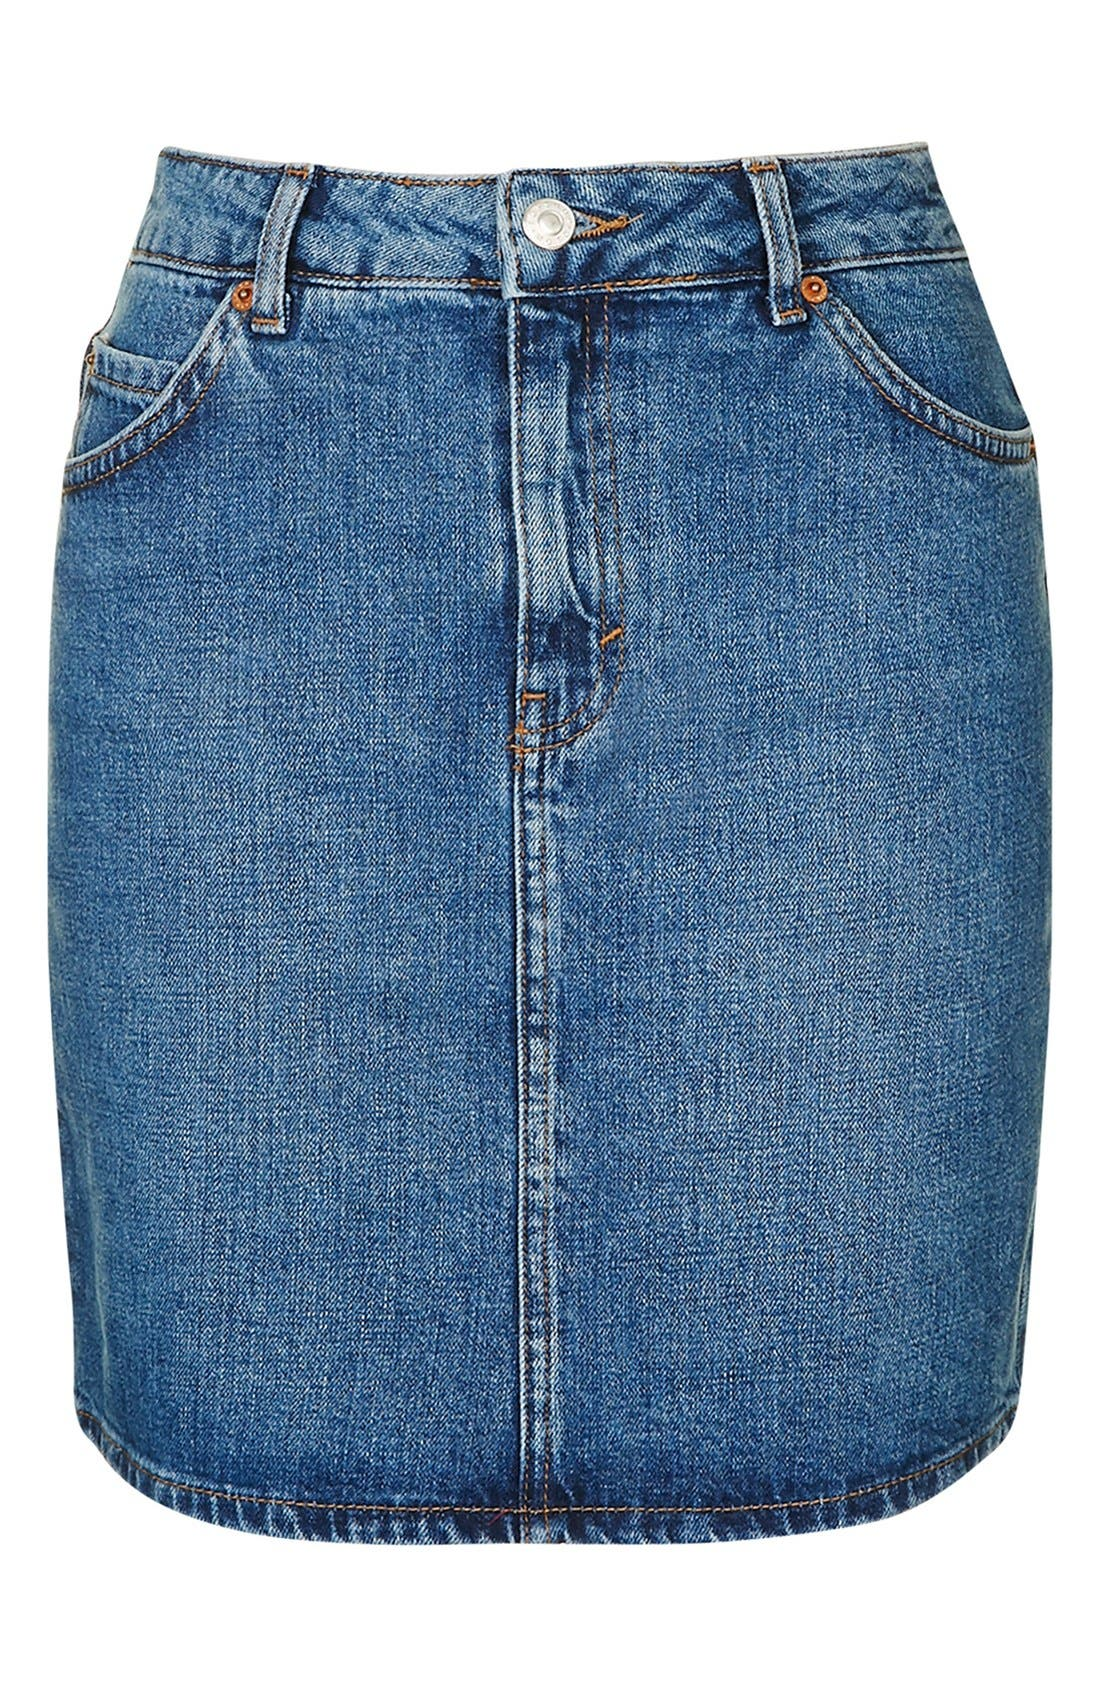 Alternate Image 4  - Topshop Moto High Rise Denim Skirt